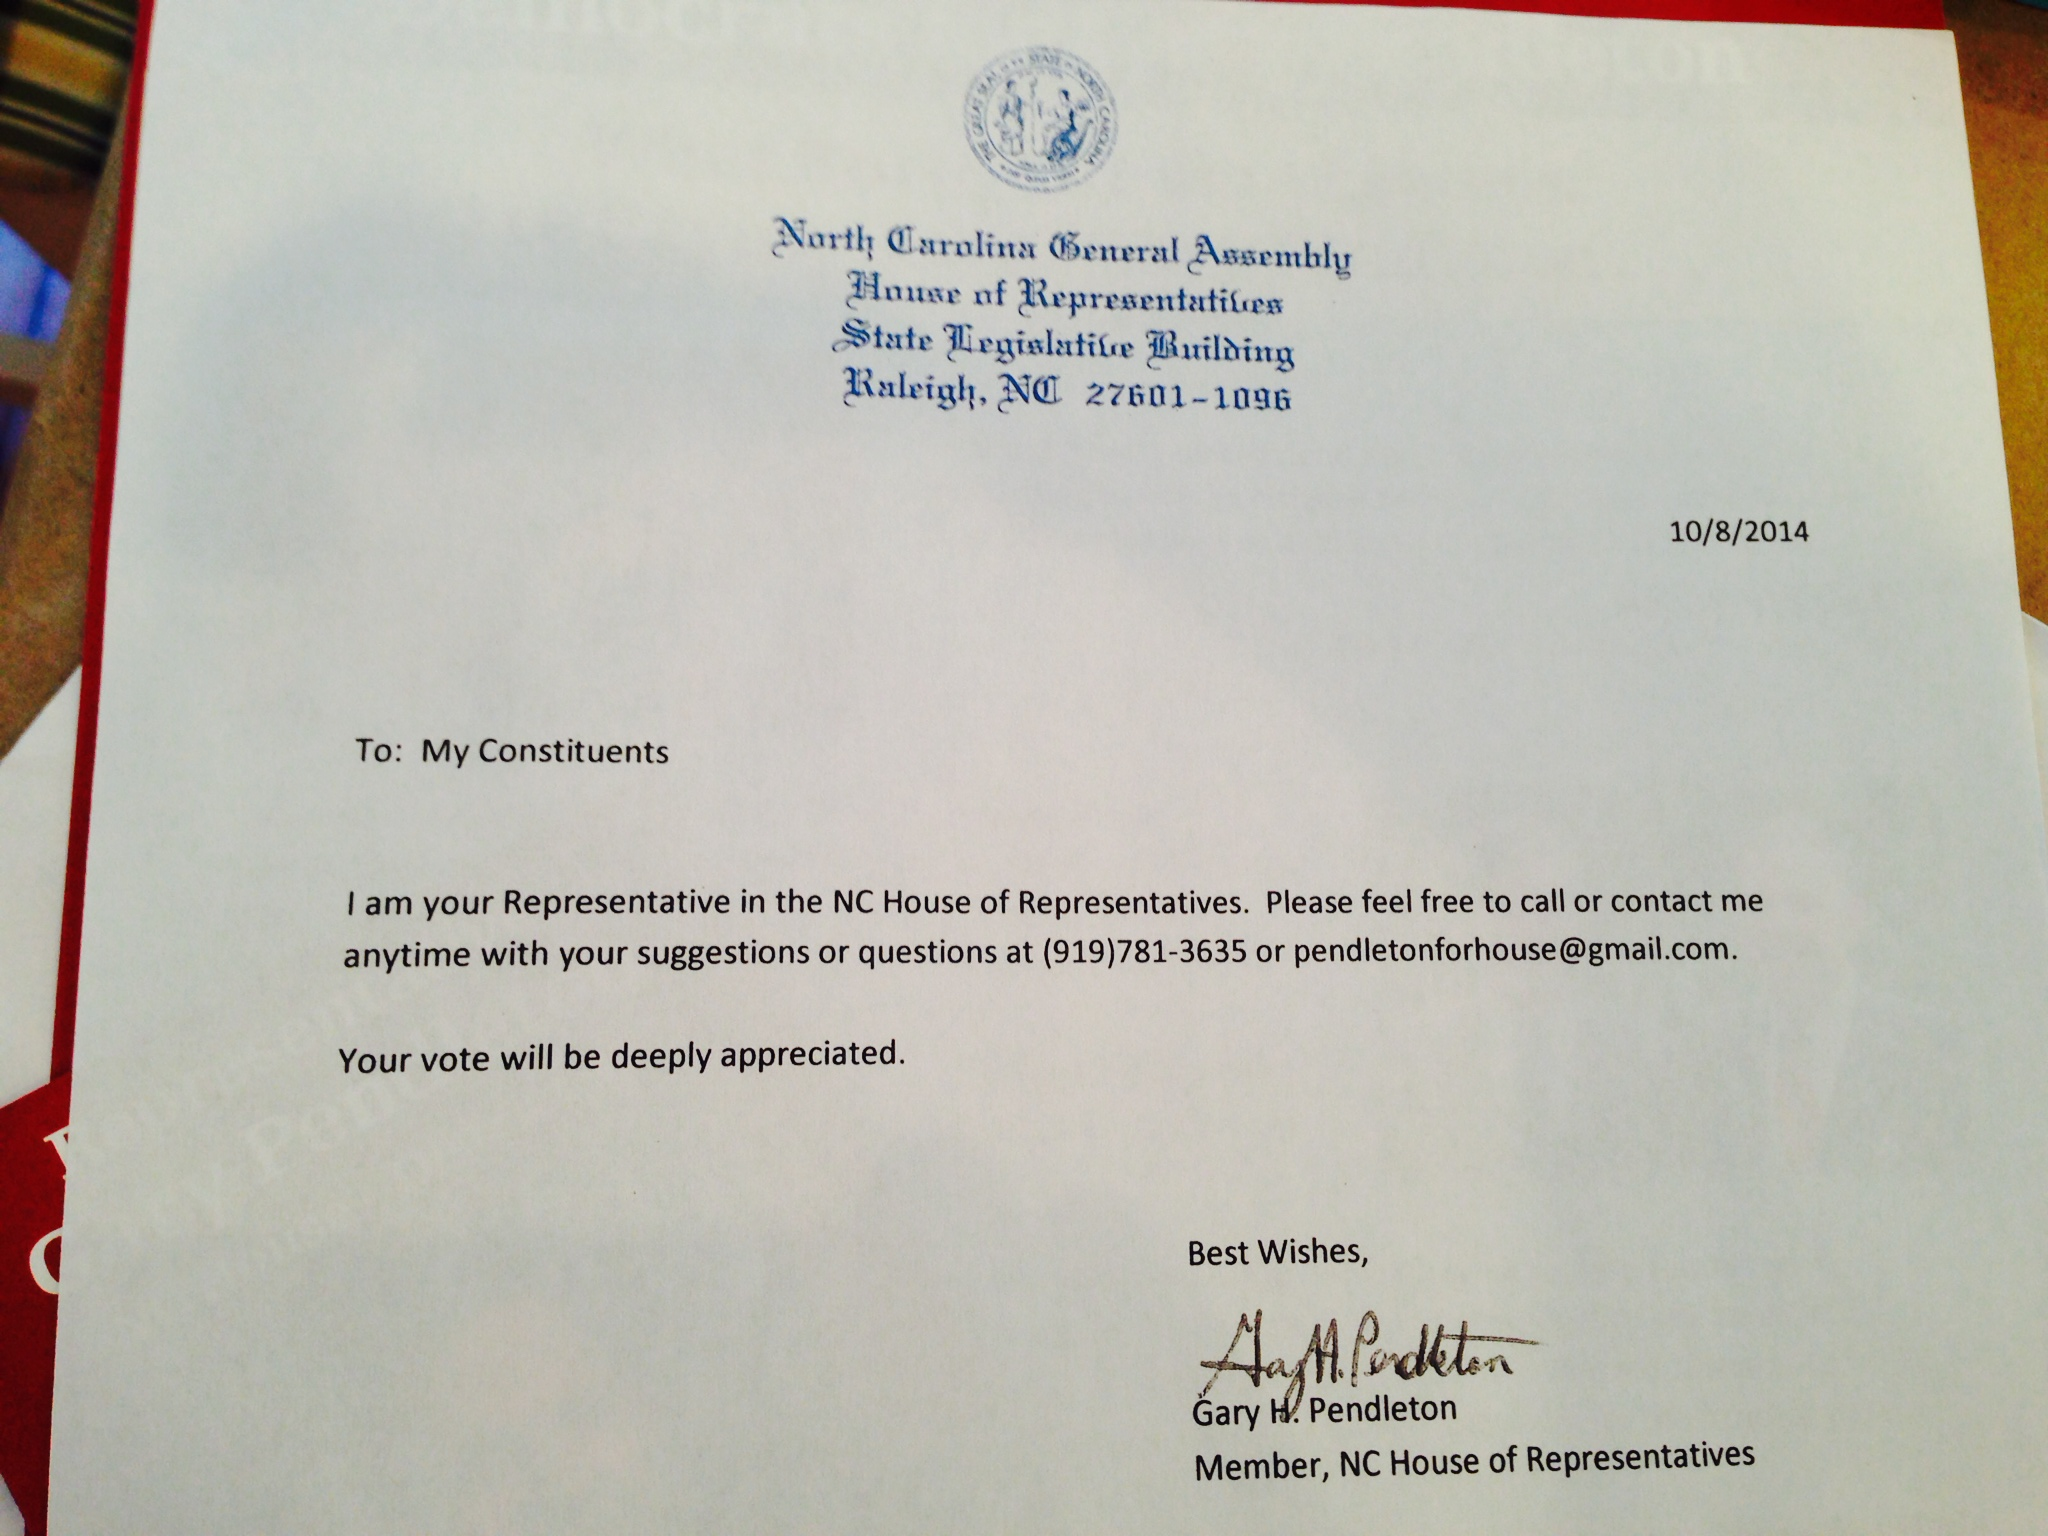 signs of gary pendleton s arrogance gregflynn the letter was sent in an envelope bearing a return address clearly stating in a formal font that it was from rep gary pendleton north carolina general